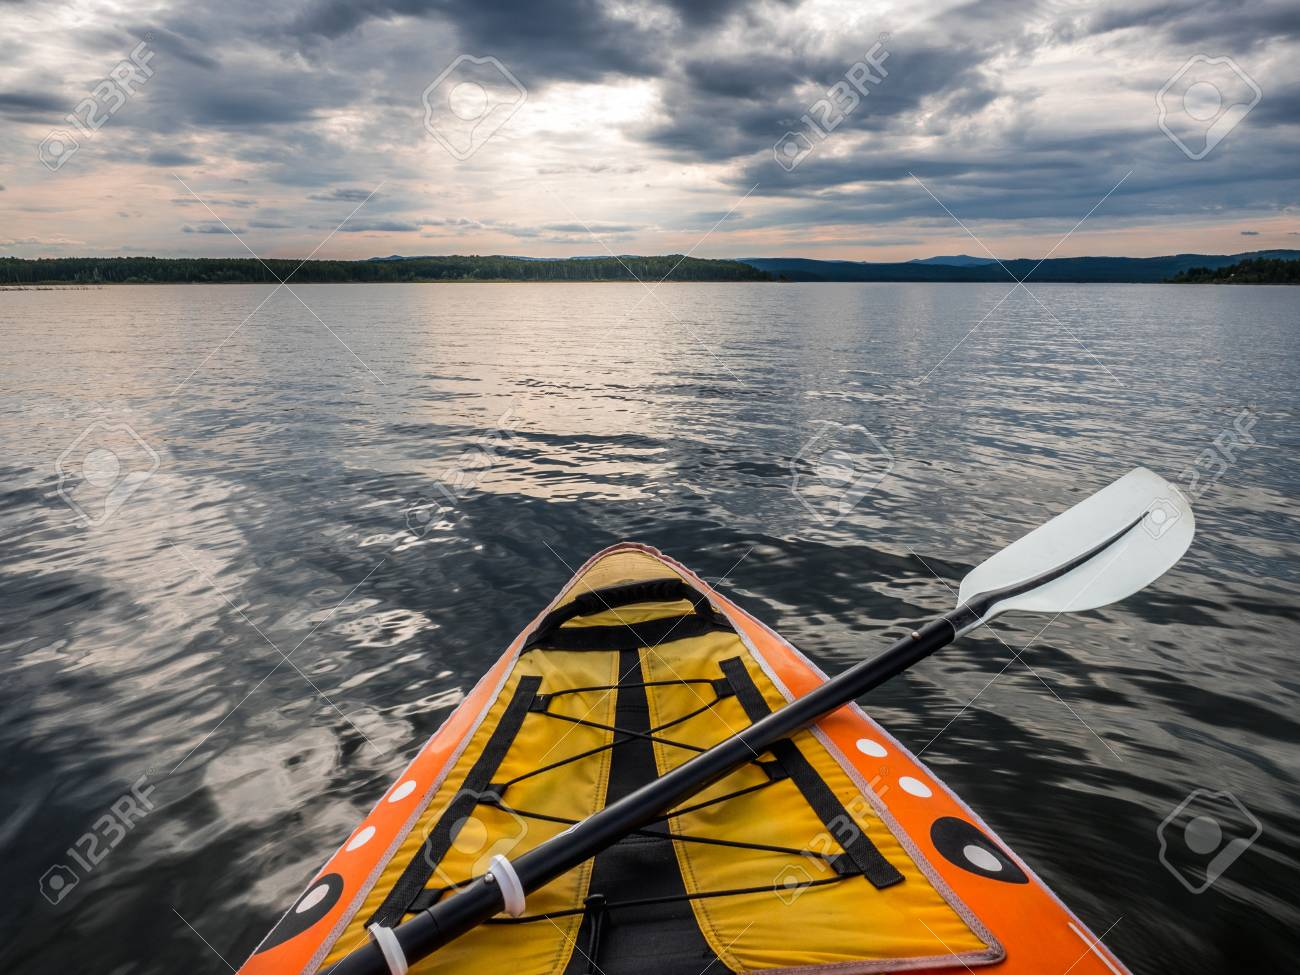 105707365-point-of-view-shot-from-inside-kayak-on-lake-water-.jpg